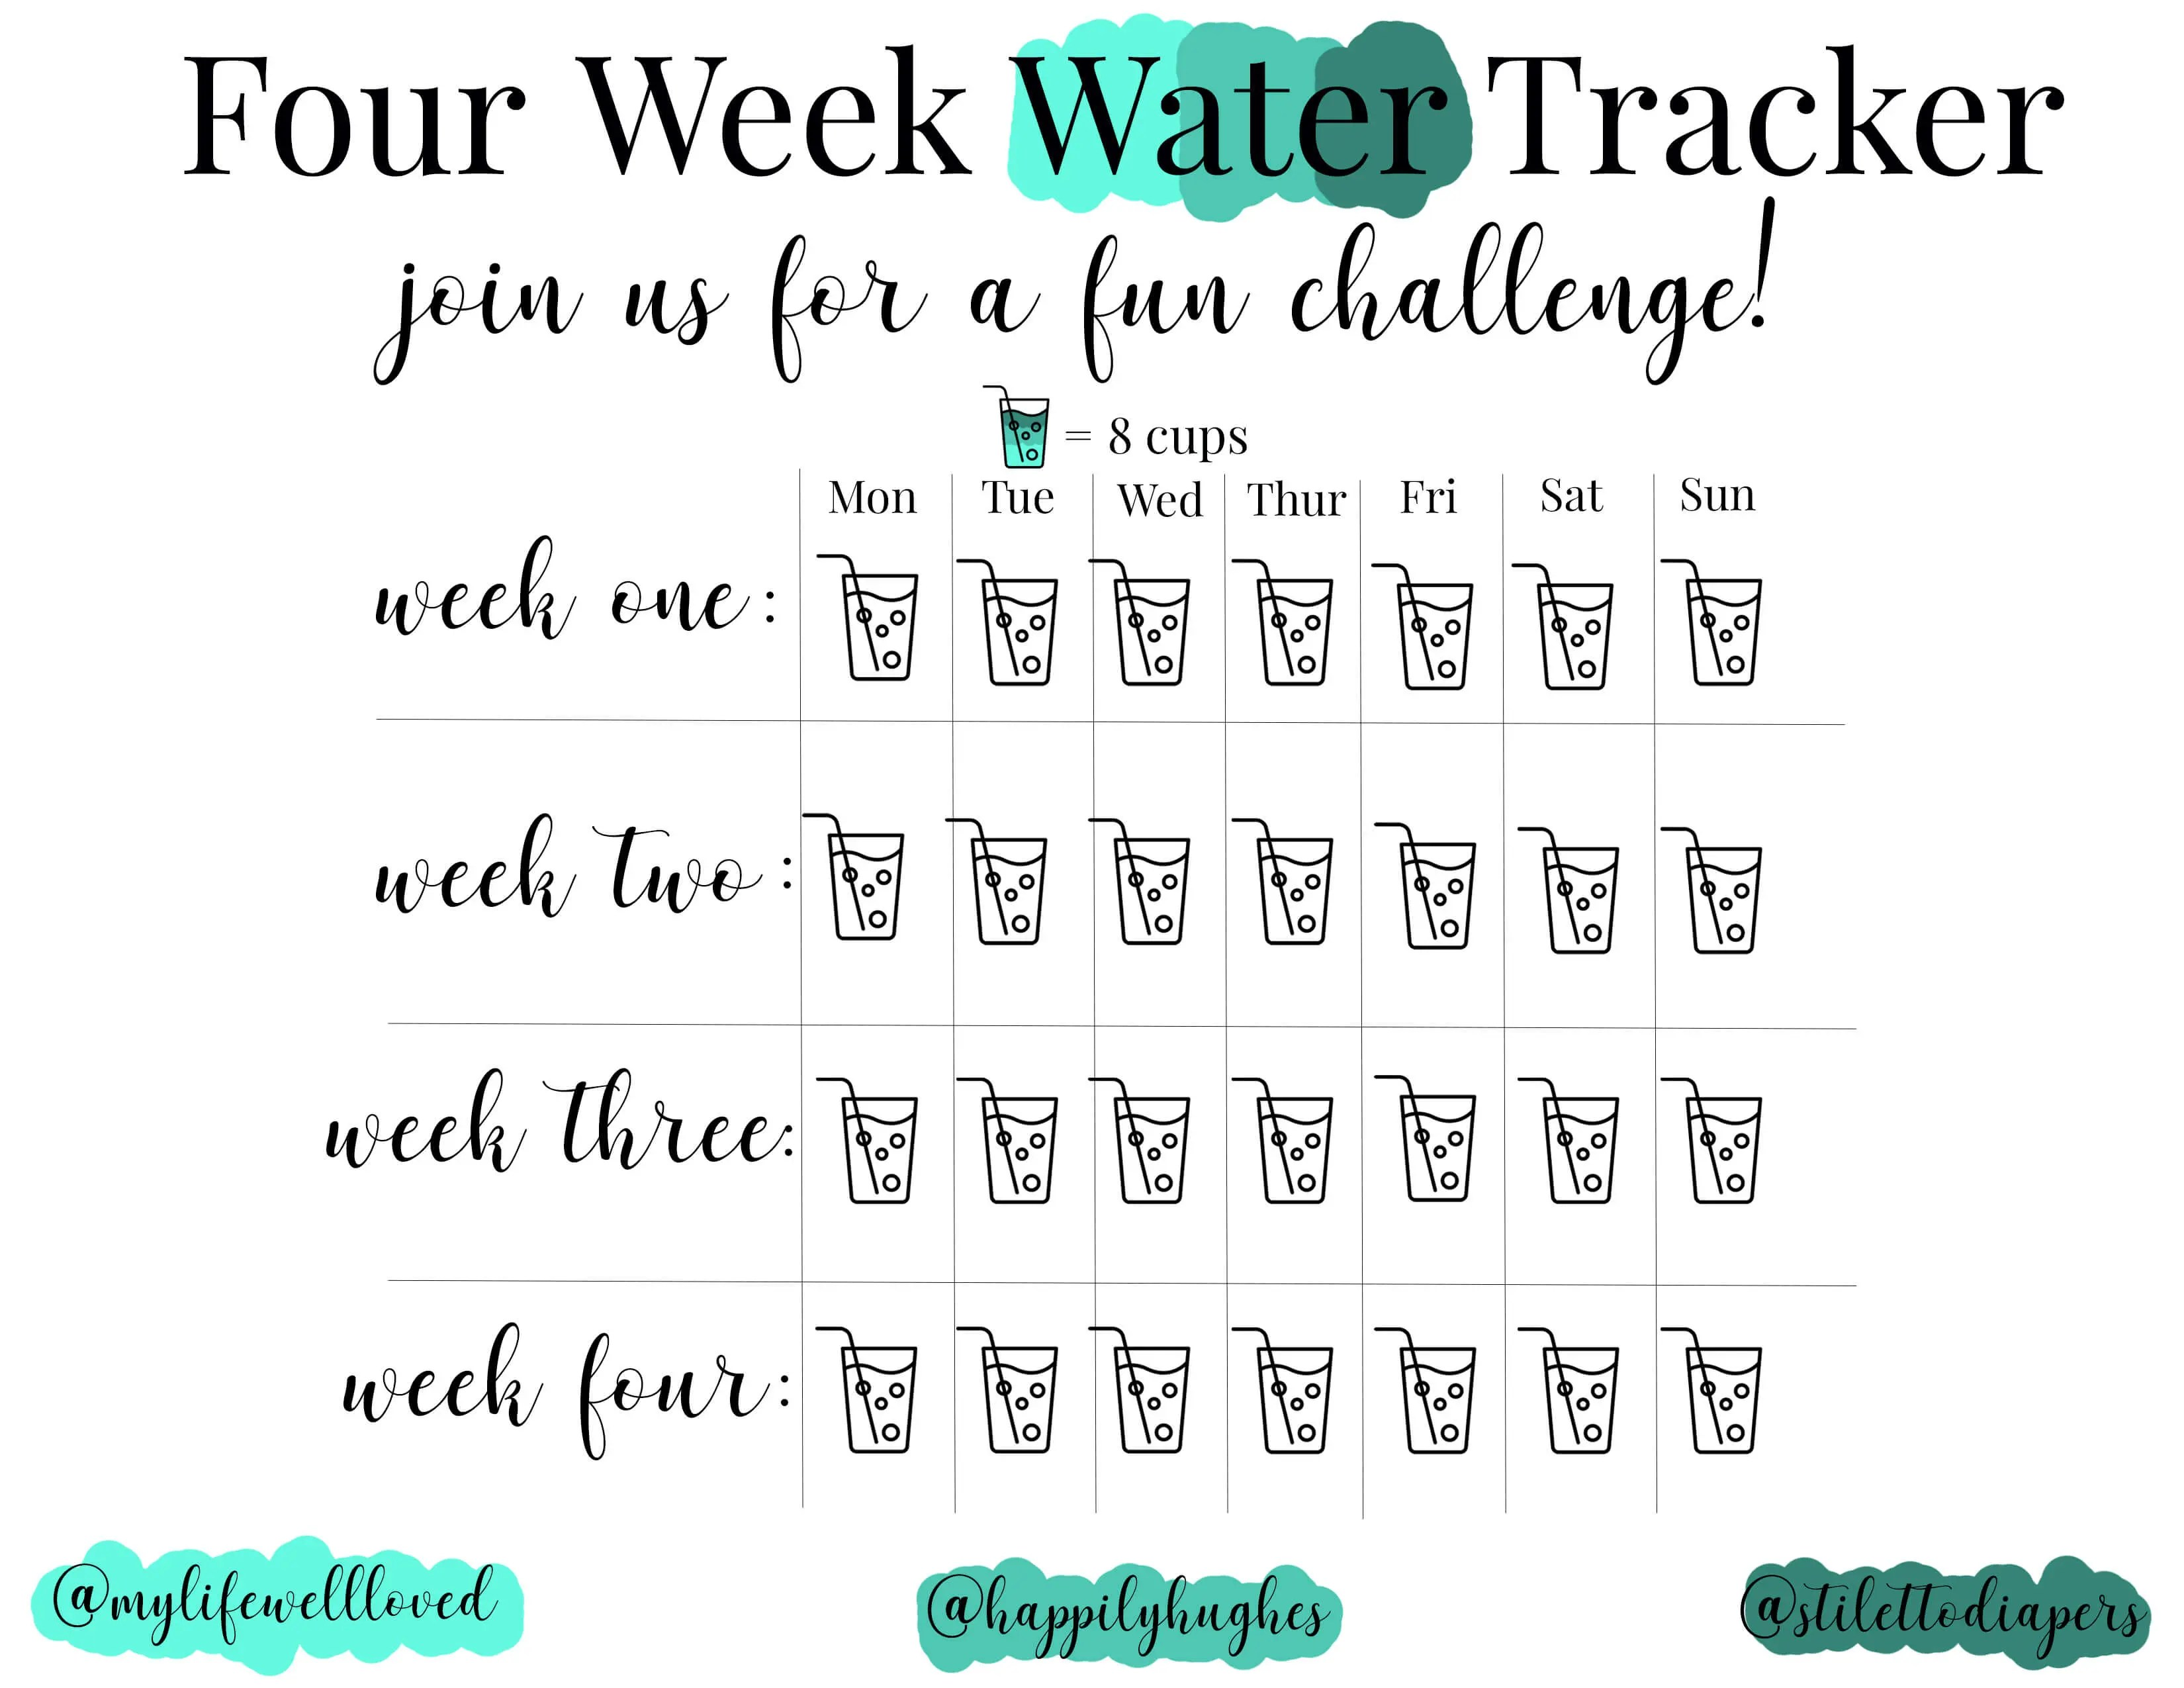 Week 2 Water Challenge And This Week S Workouts